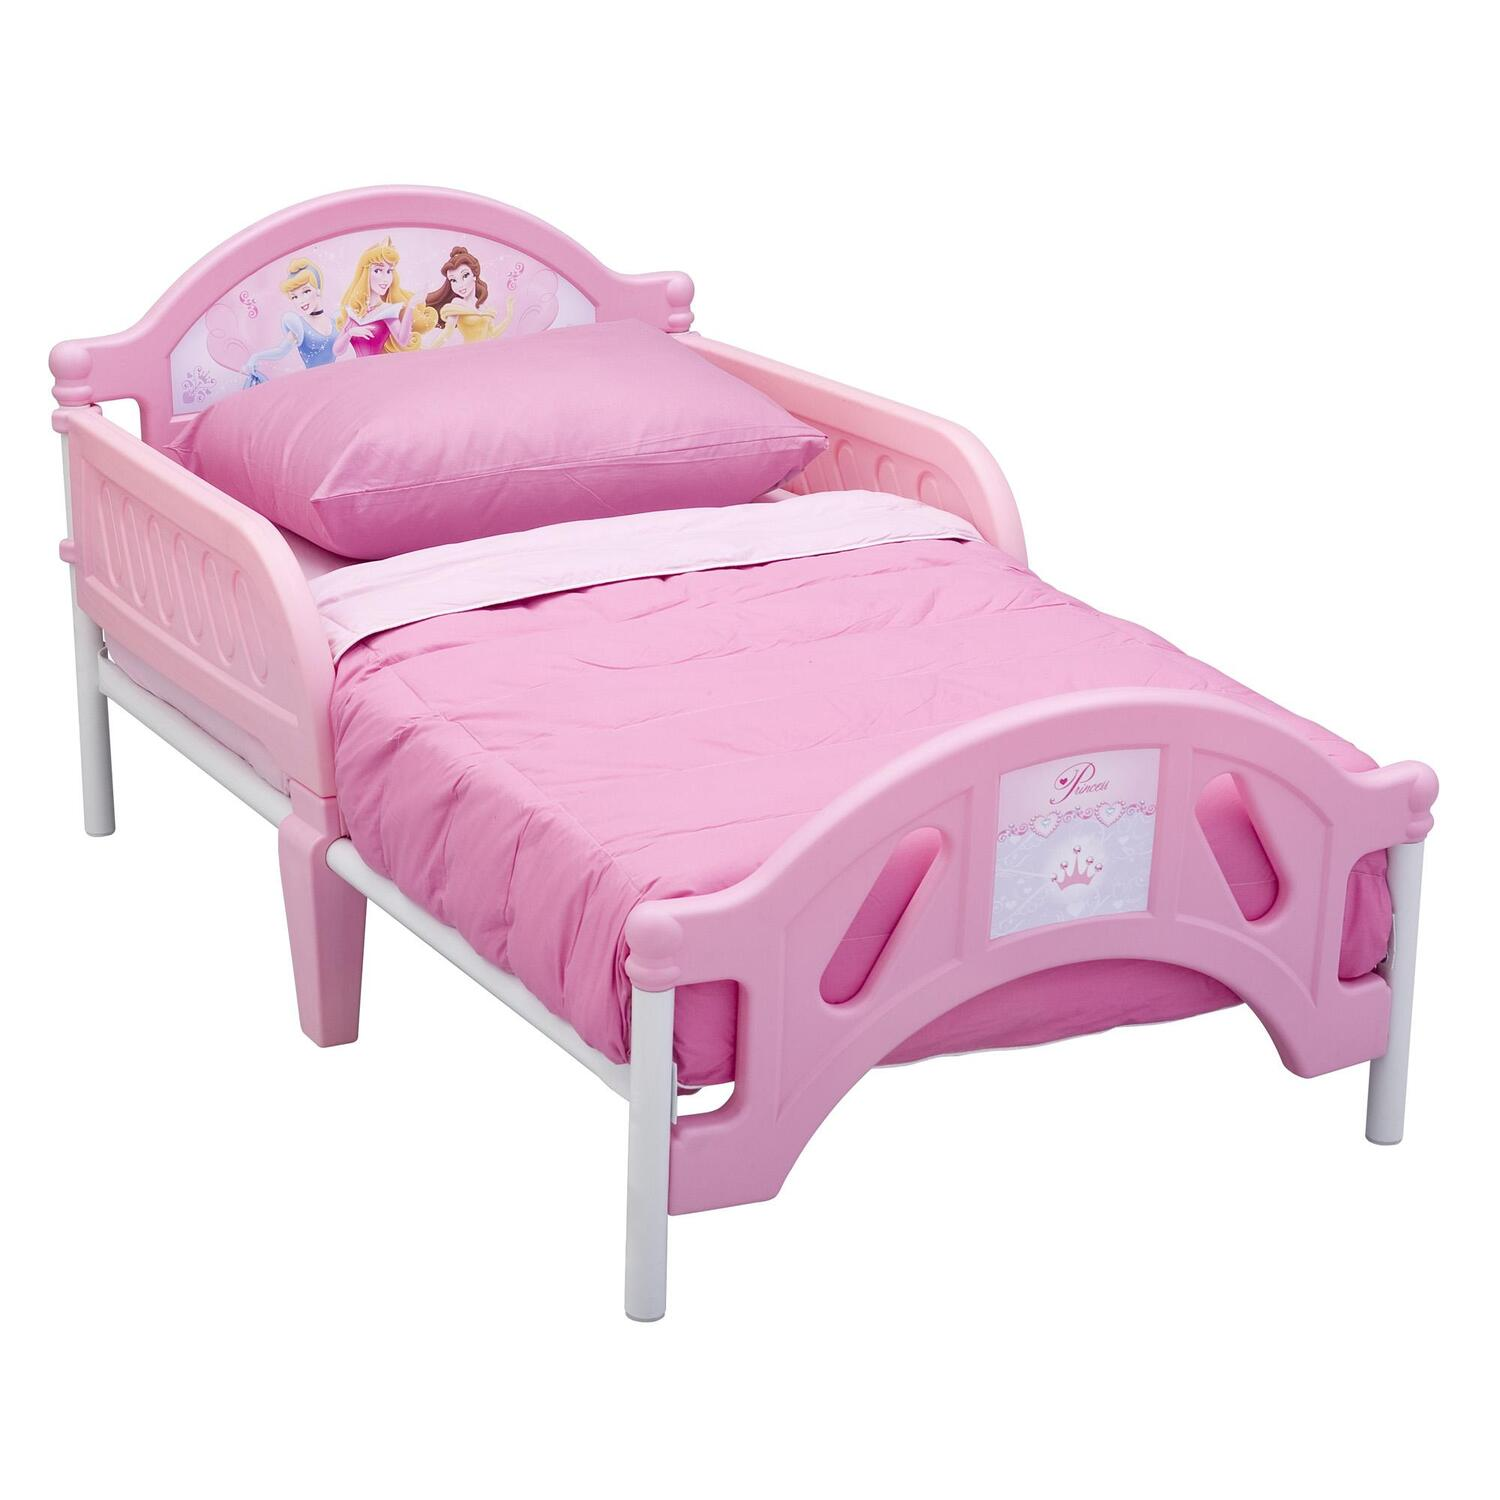 Disney Disney Princess Pretty Pink Toddler Bed By OJ